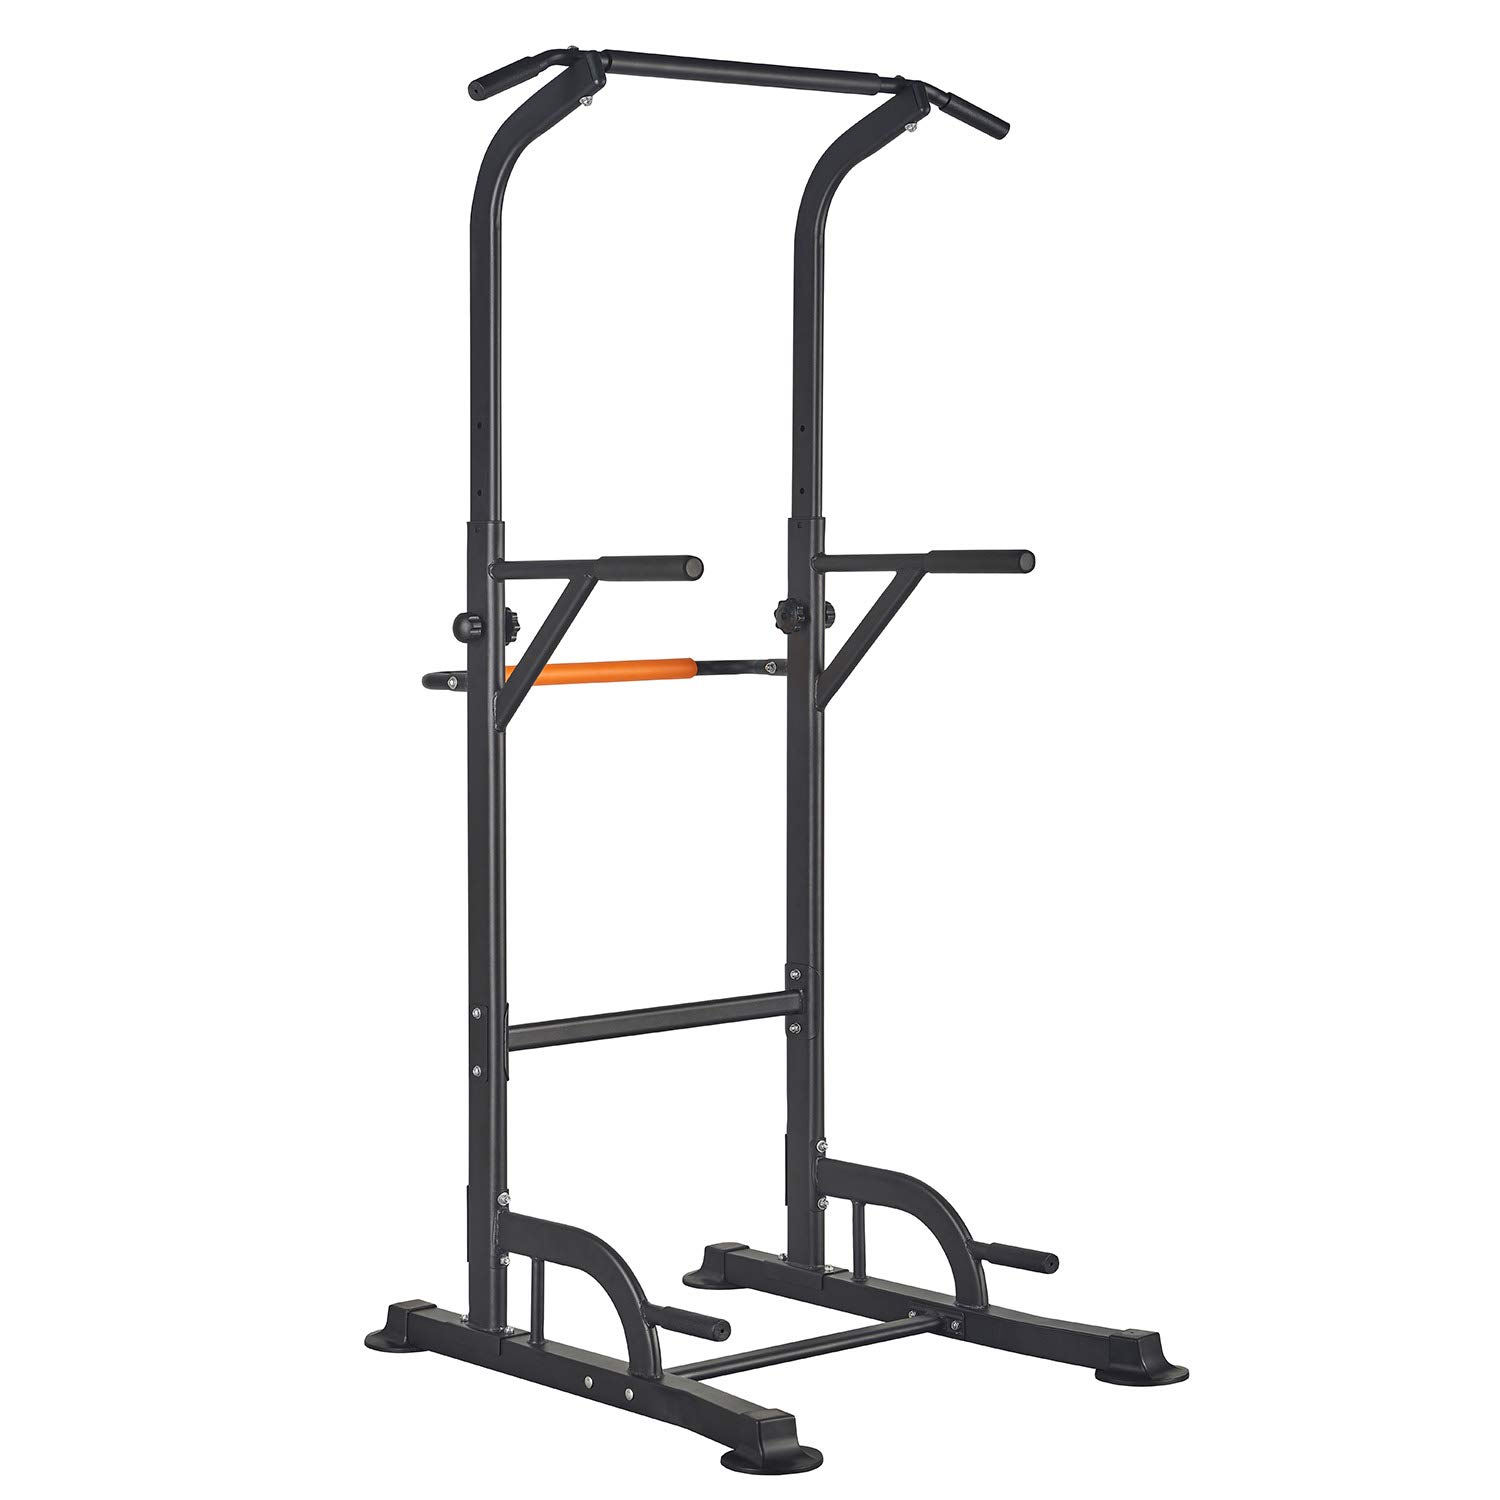 RELIFE REBUILD YOUR LIFE Pull Up Dip Station Power Tower Workout for Home Gym Adjustable Height Strength Training Equipment